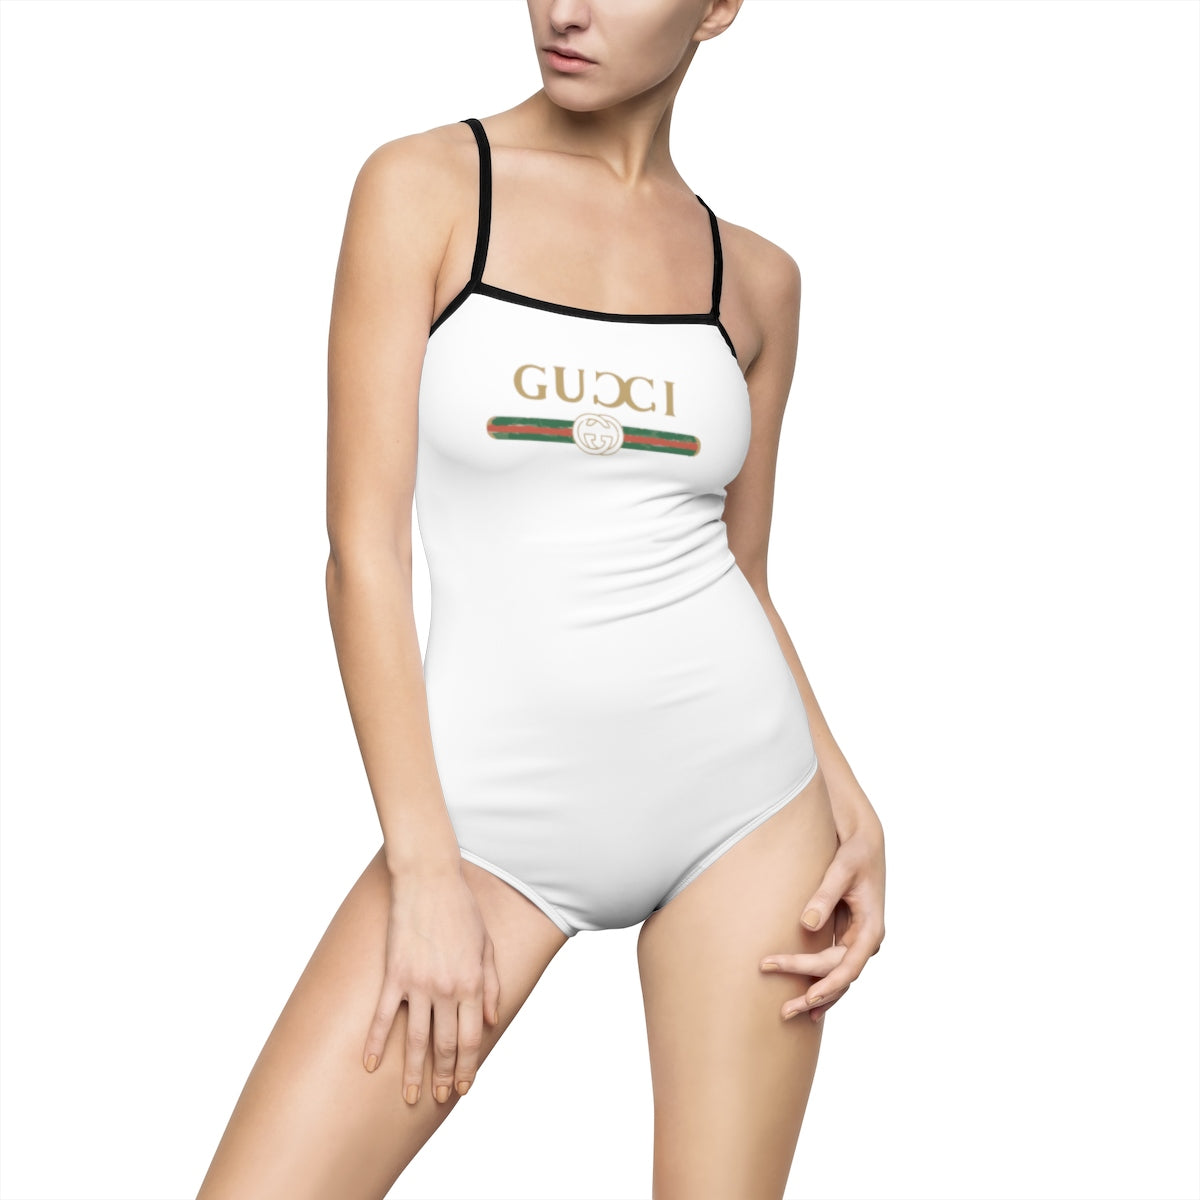 GU CC I One-piece Swimsuit